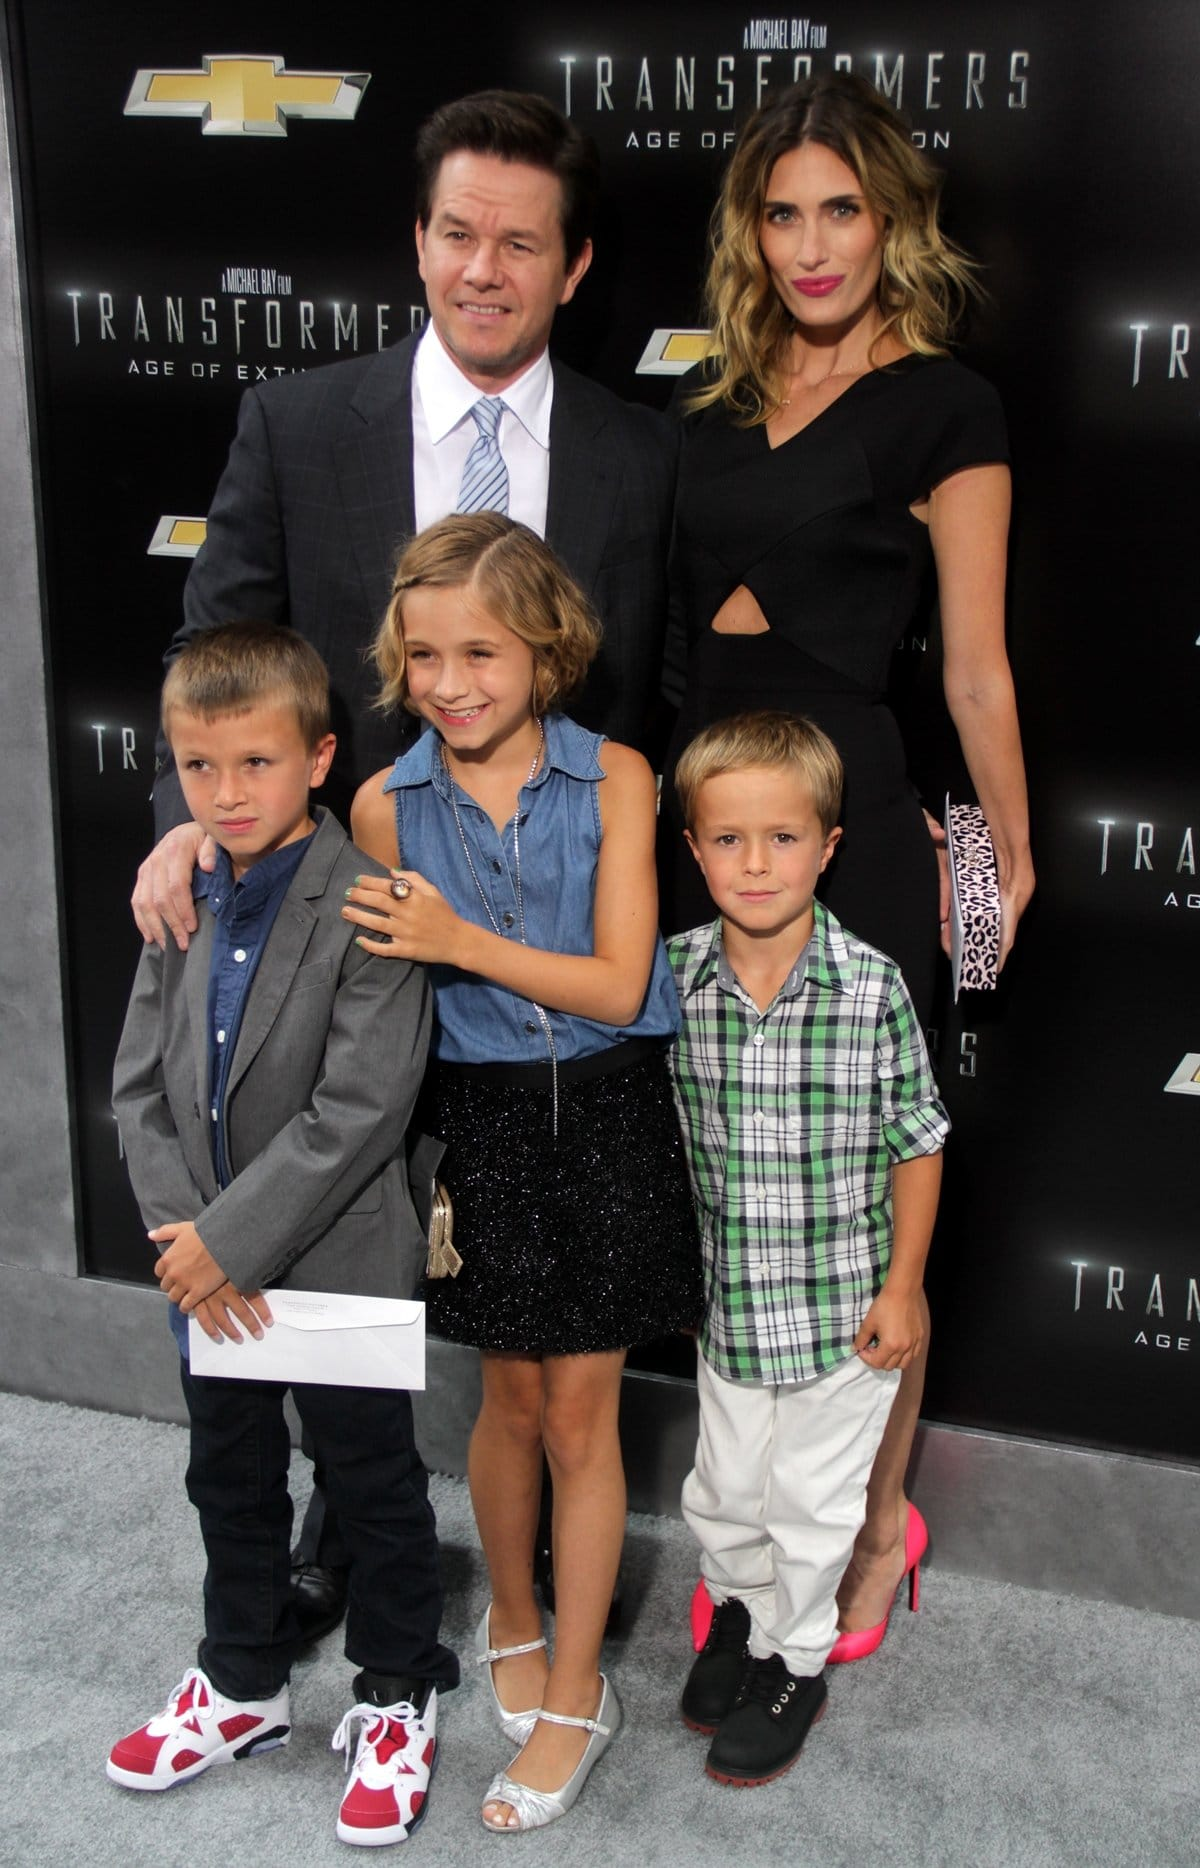 Mark Wahlberg was joined by his wife Rhea Durham and three of their four kids, Ella, Michael, and Brendan, at the premiere of his movie Transformers: Age of Extinction